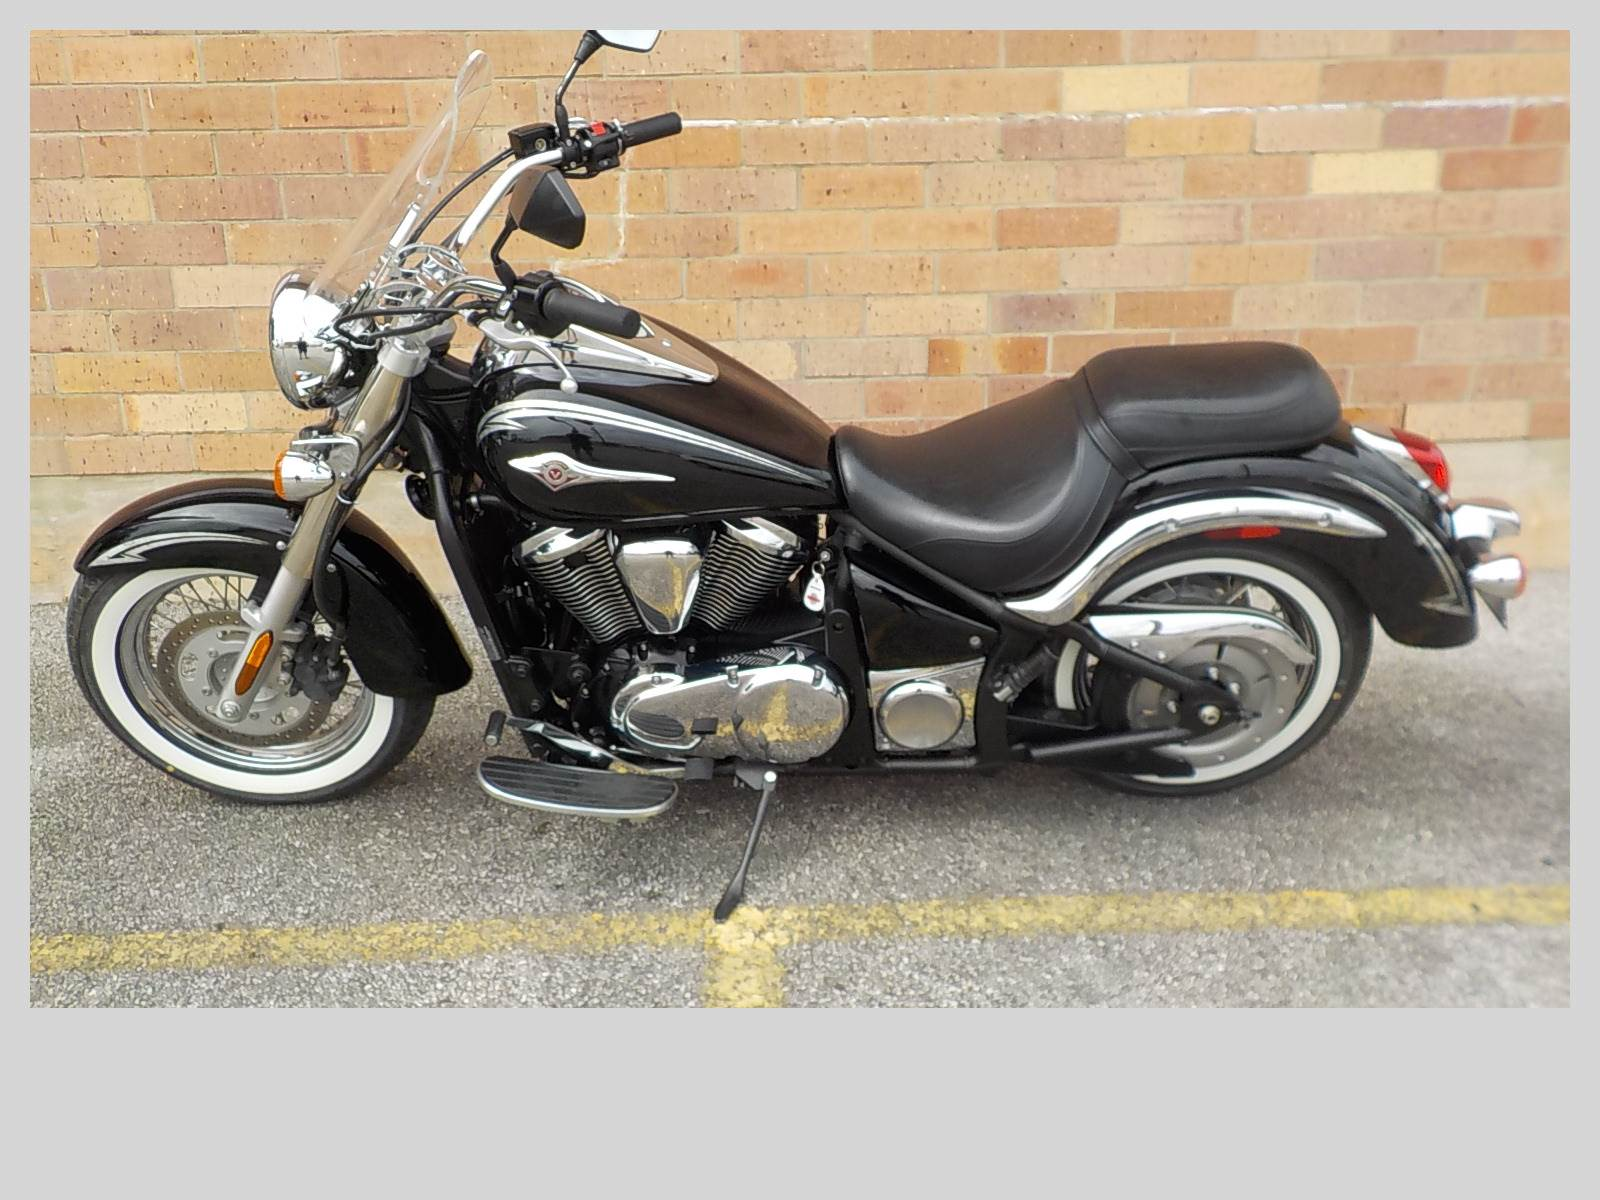 2011 Kawasaki Vulcan® 900 Classic LT in San Antonio, Texas - Photo 2